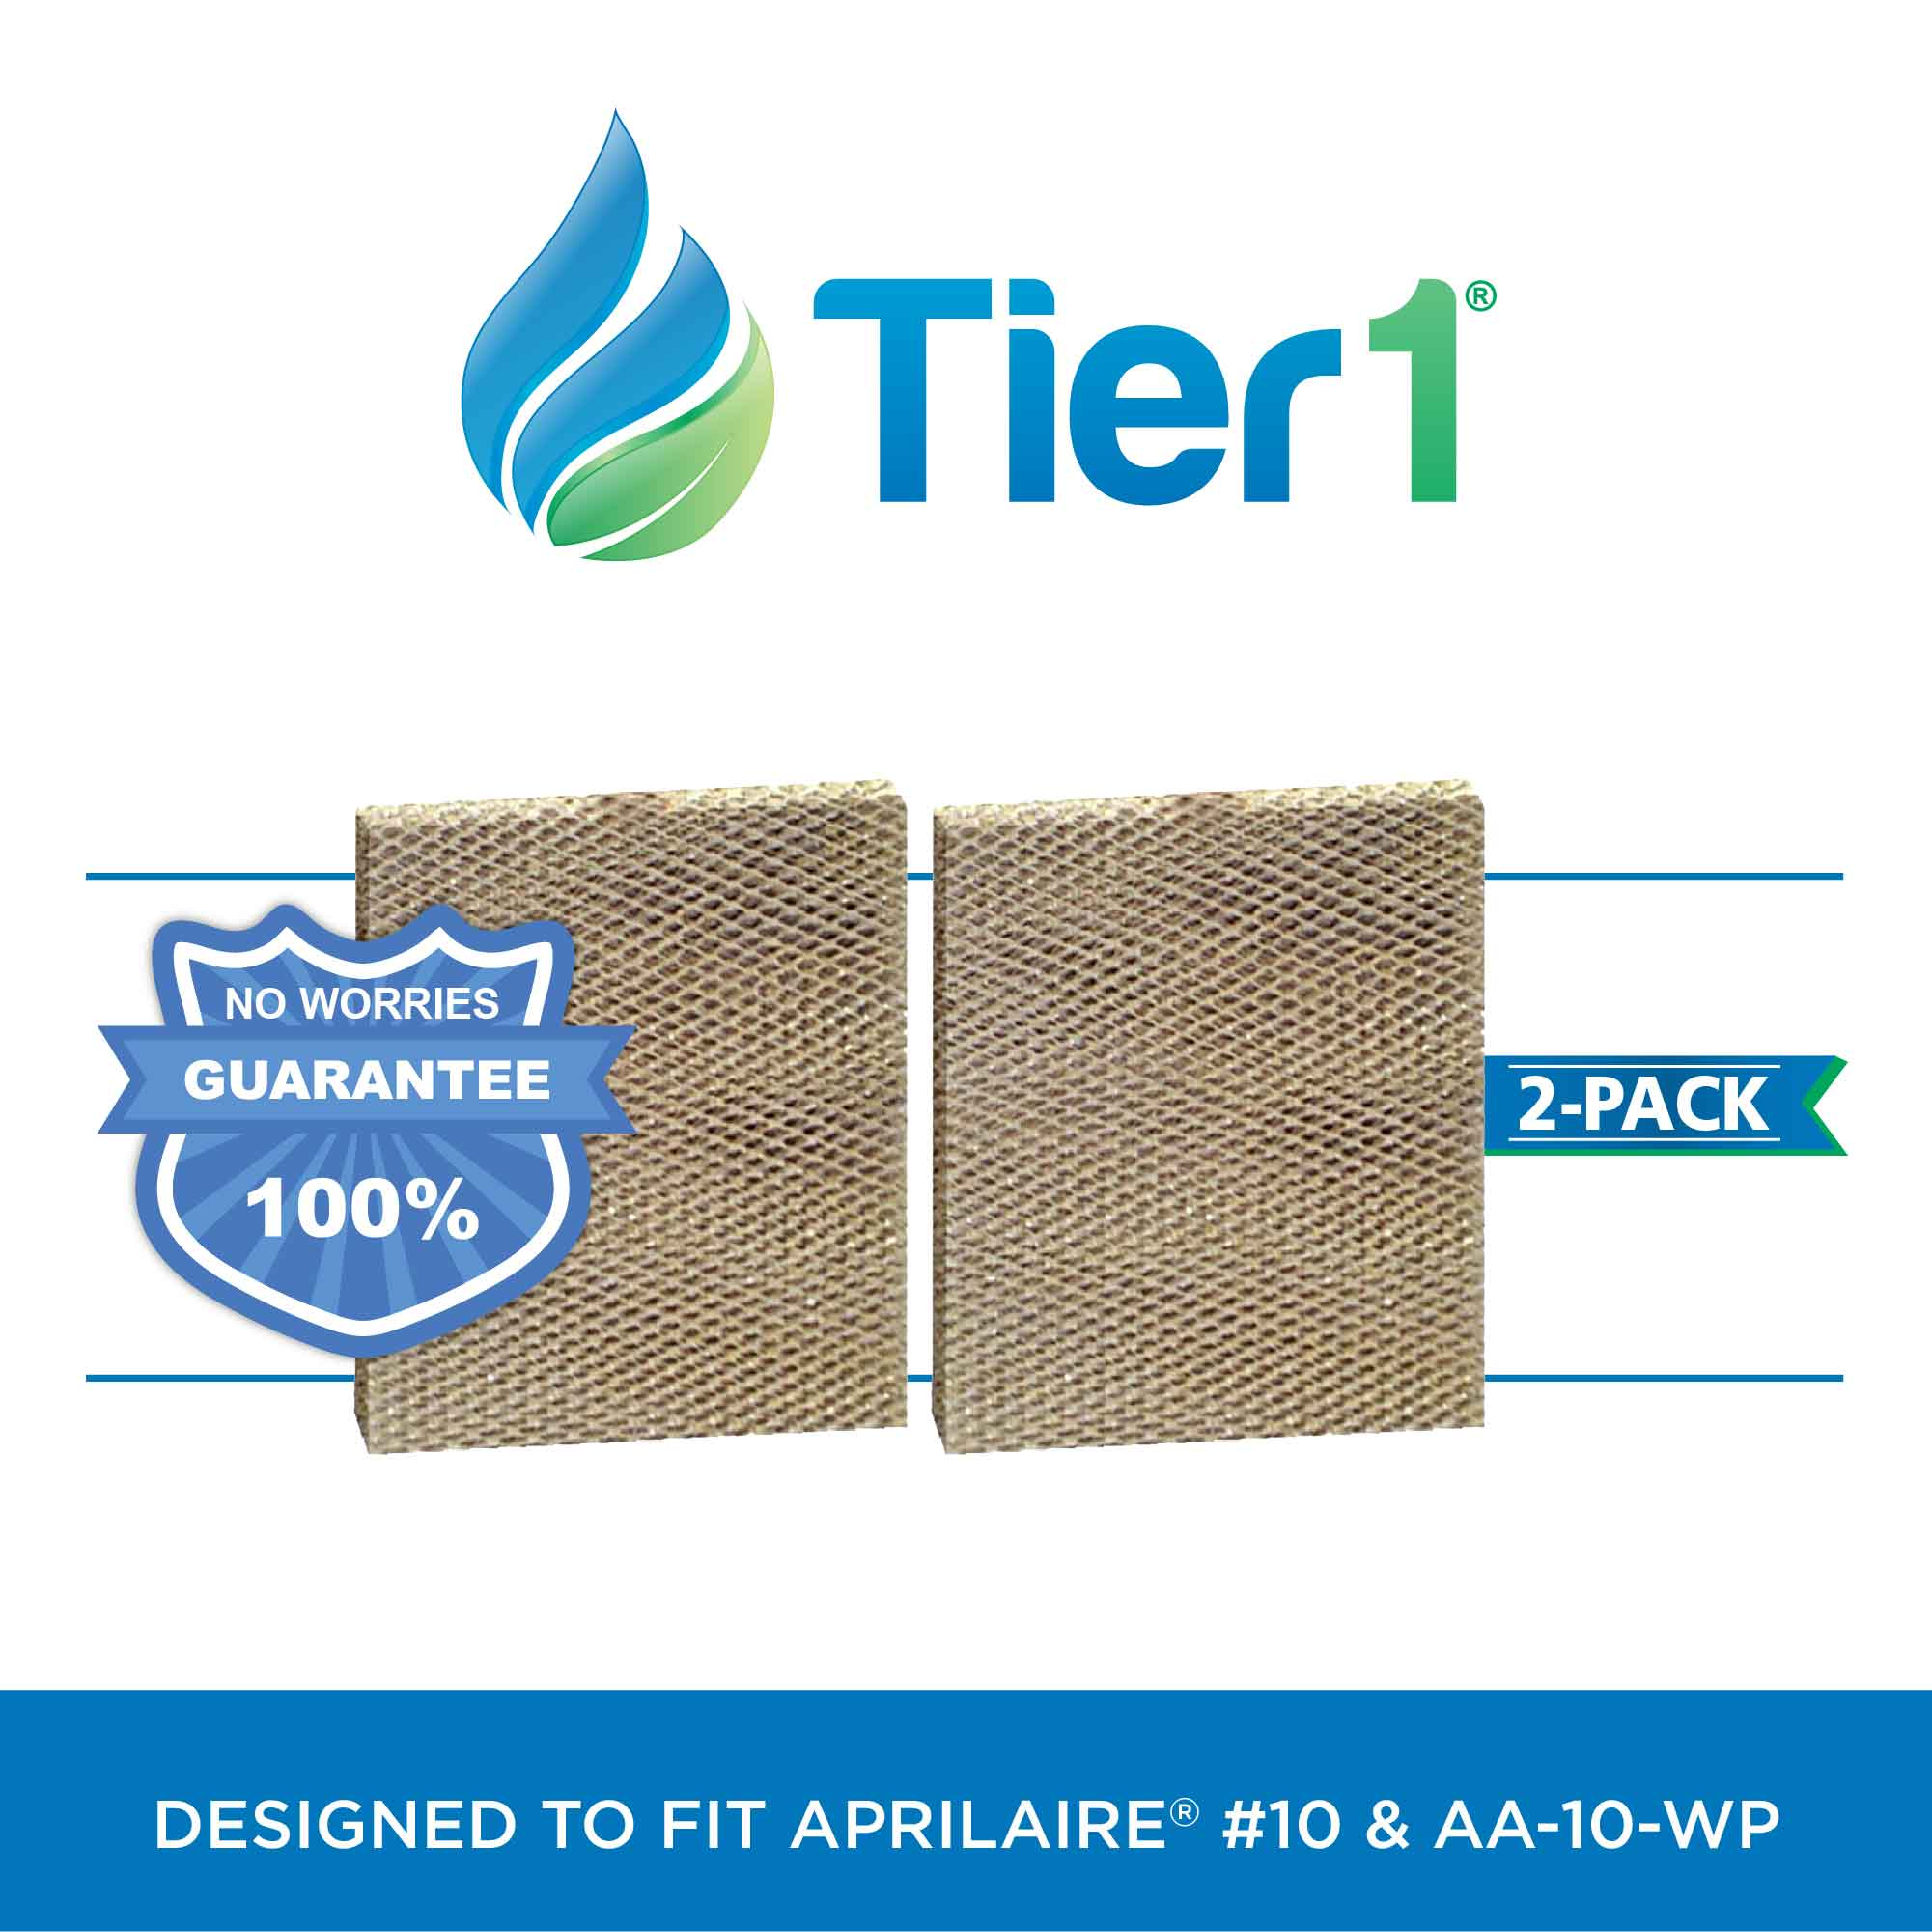 #10 Aprilaire Comparable Humidifier Replacement Water Panel by Tier1 (2-Pack) TIER1_HMF1220_2_PACK